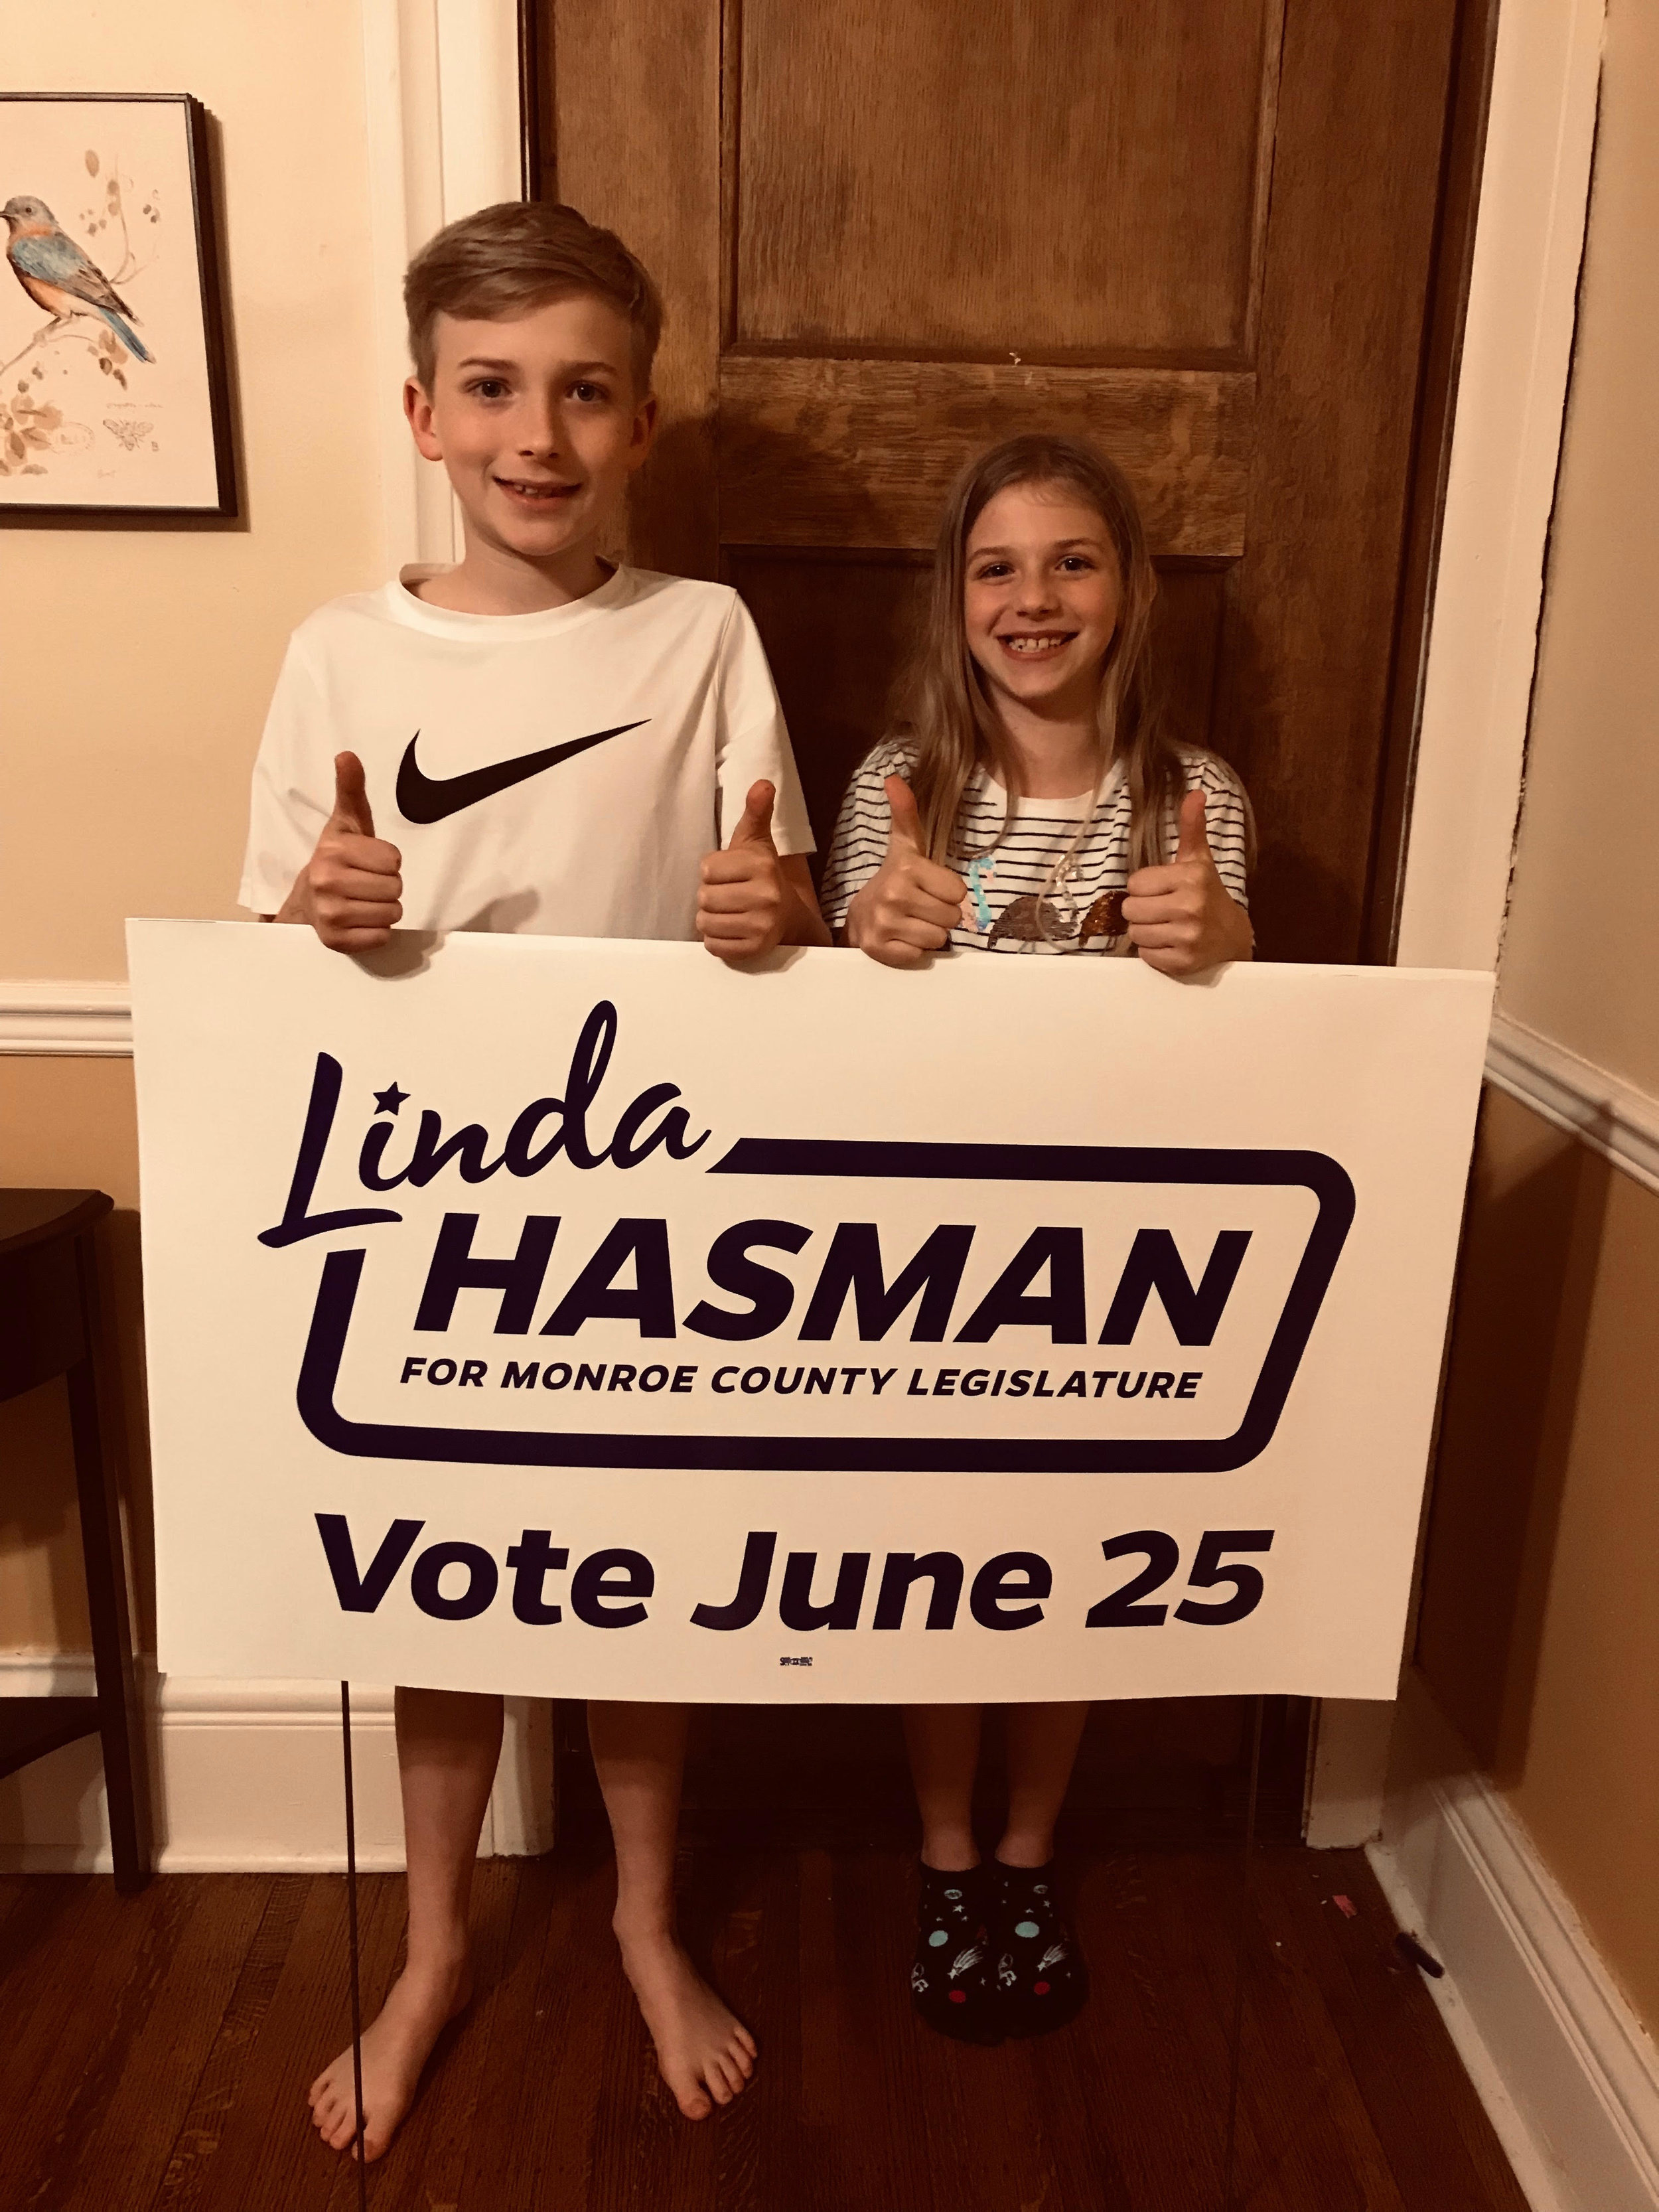 Sam and Abby are ready to deliver your Linda Hasman lawn sign. Just fill out the form!